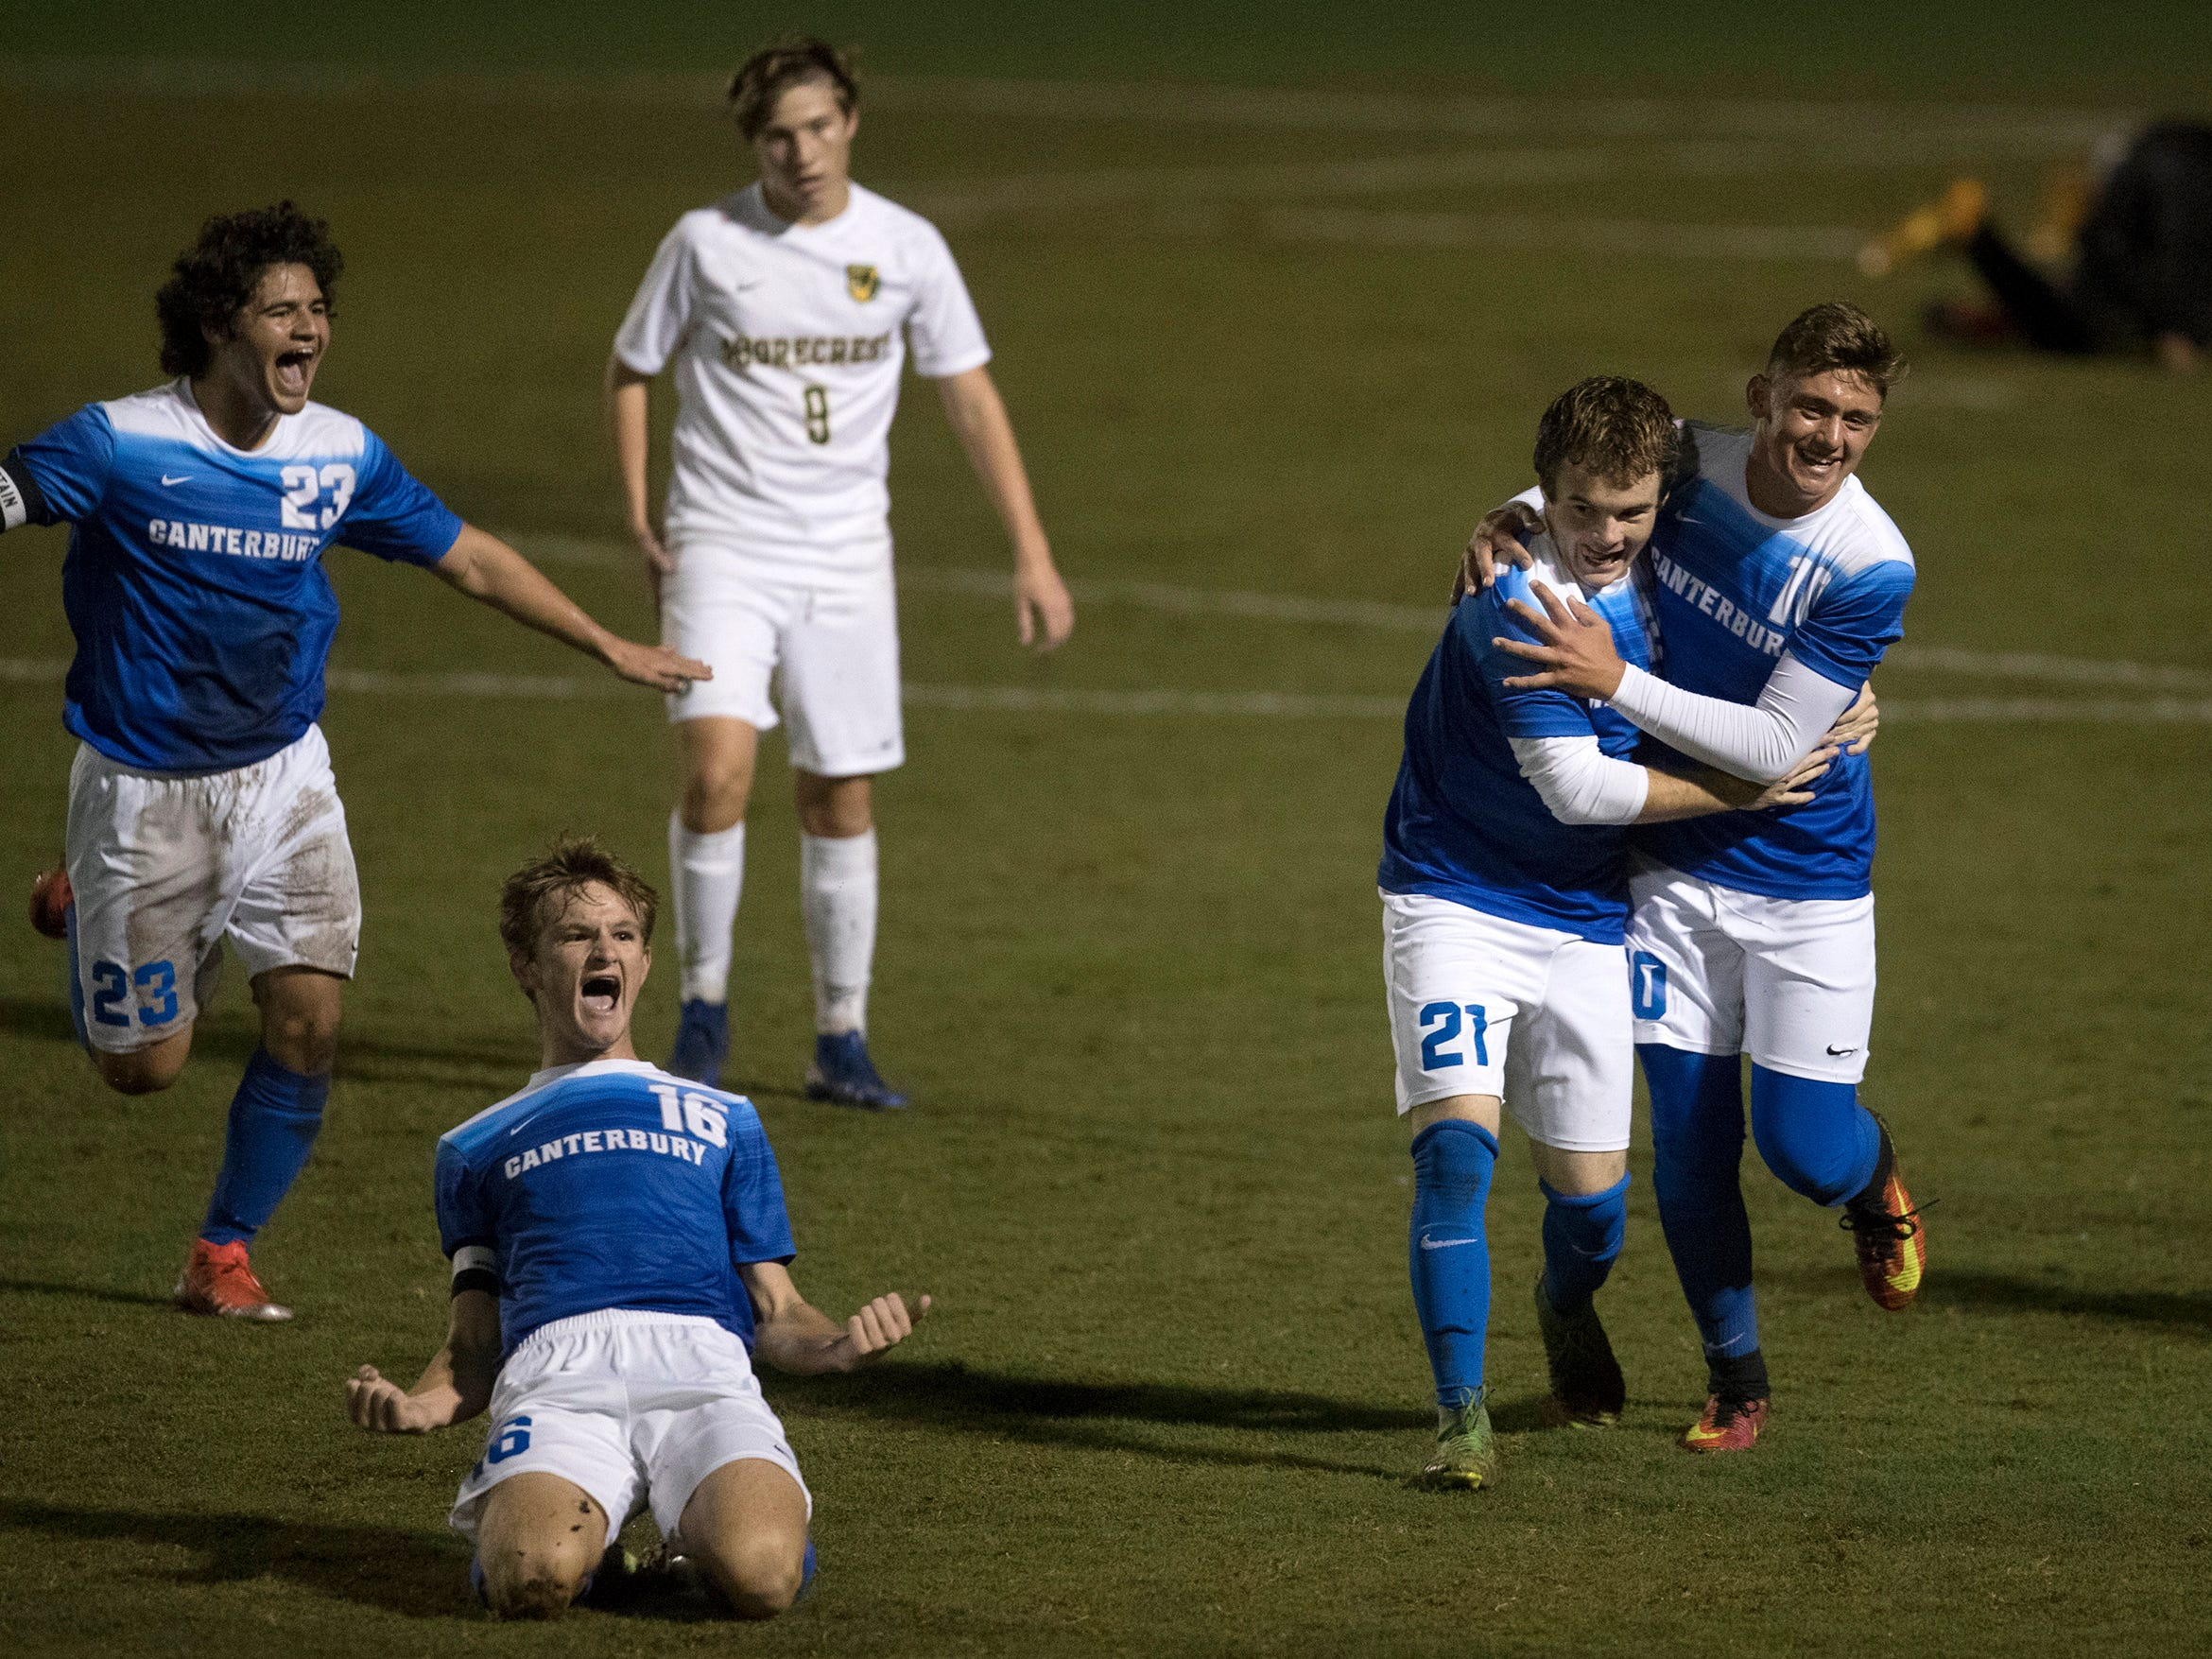 Canterbury School players celebrate scoring a goal against Shorecrest on Wednesday in the Class 1A regional soccer final at Canterbury in Fort Myers. Shorecrest beat Canterbury 3-2.